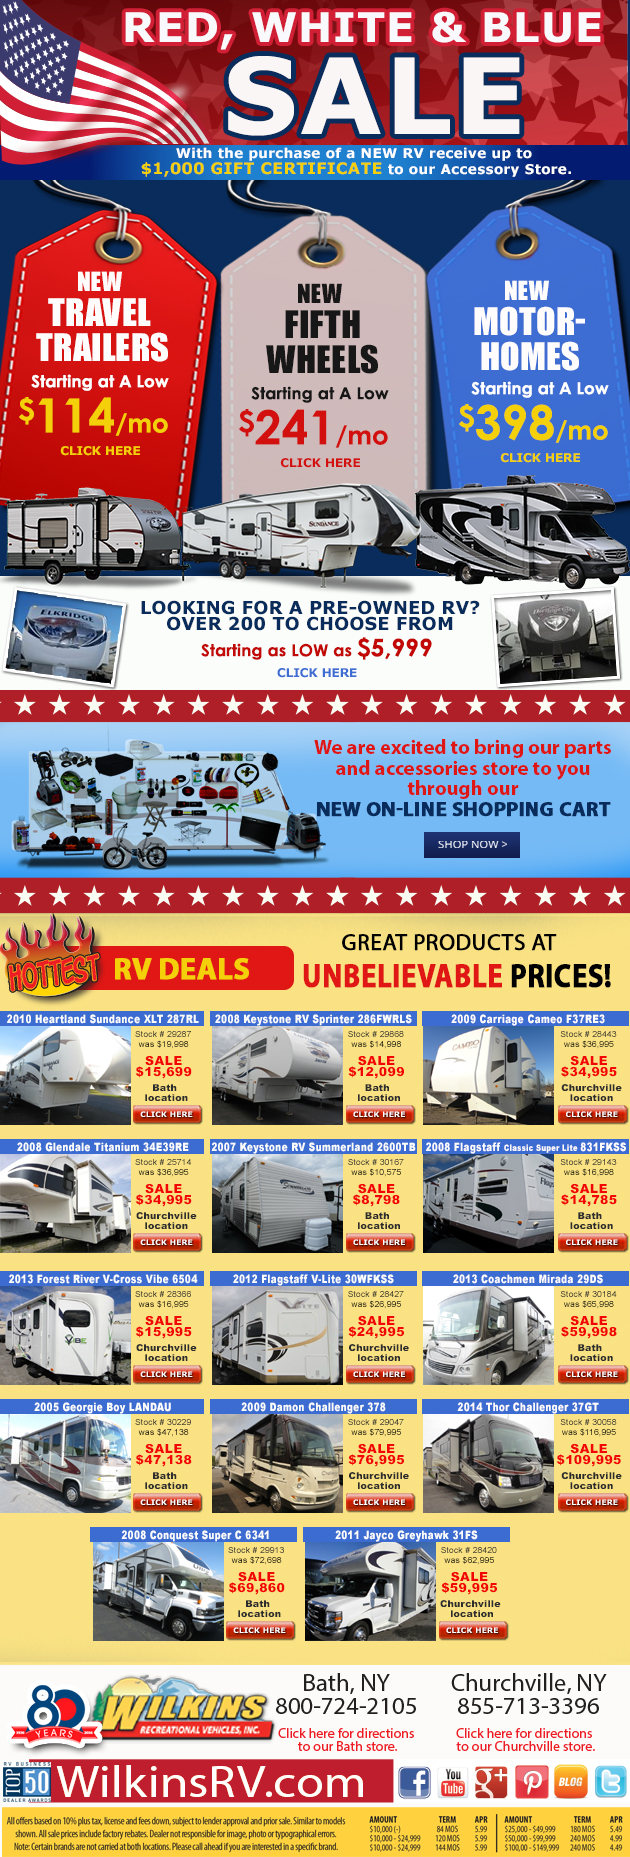 Wilkins RV sale